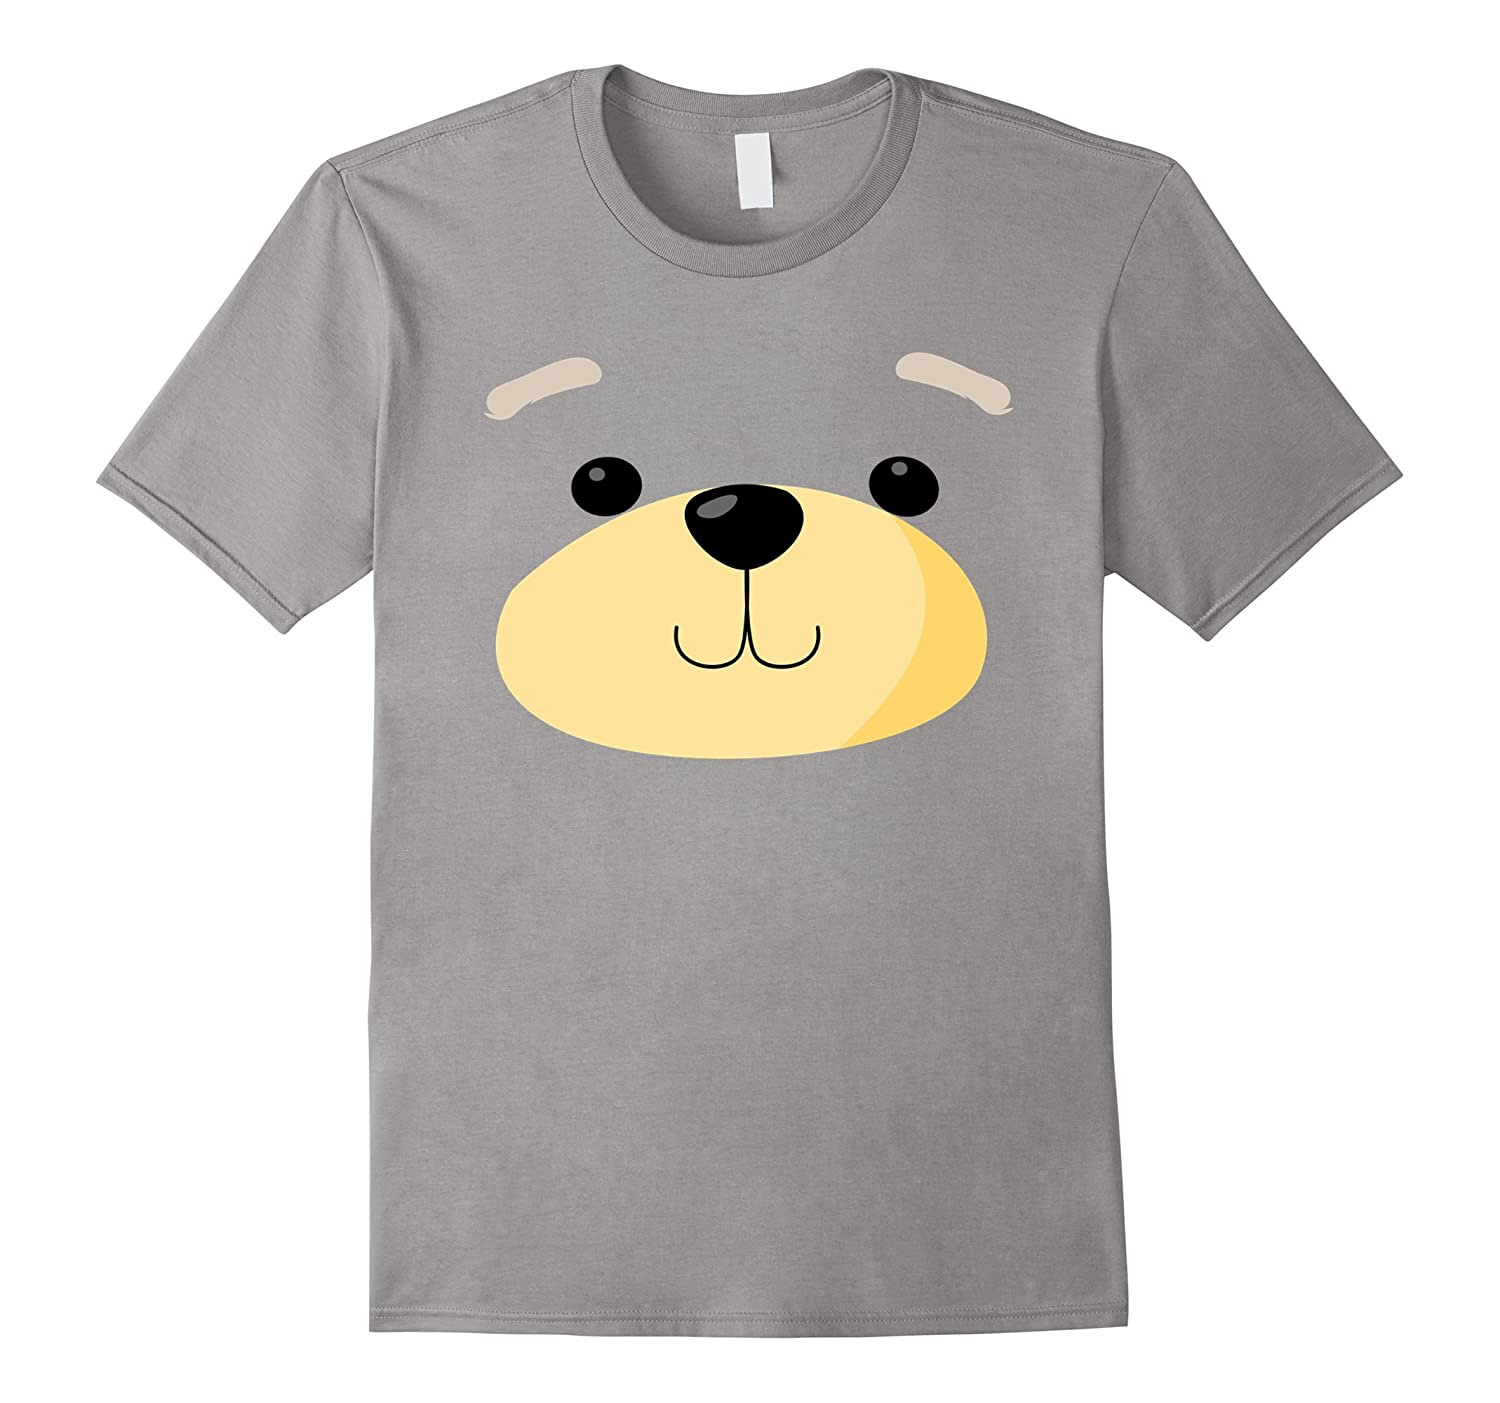 Cute Bear Face Costume Shirt - Funny Halloween Teddy Gift-ANZ